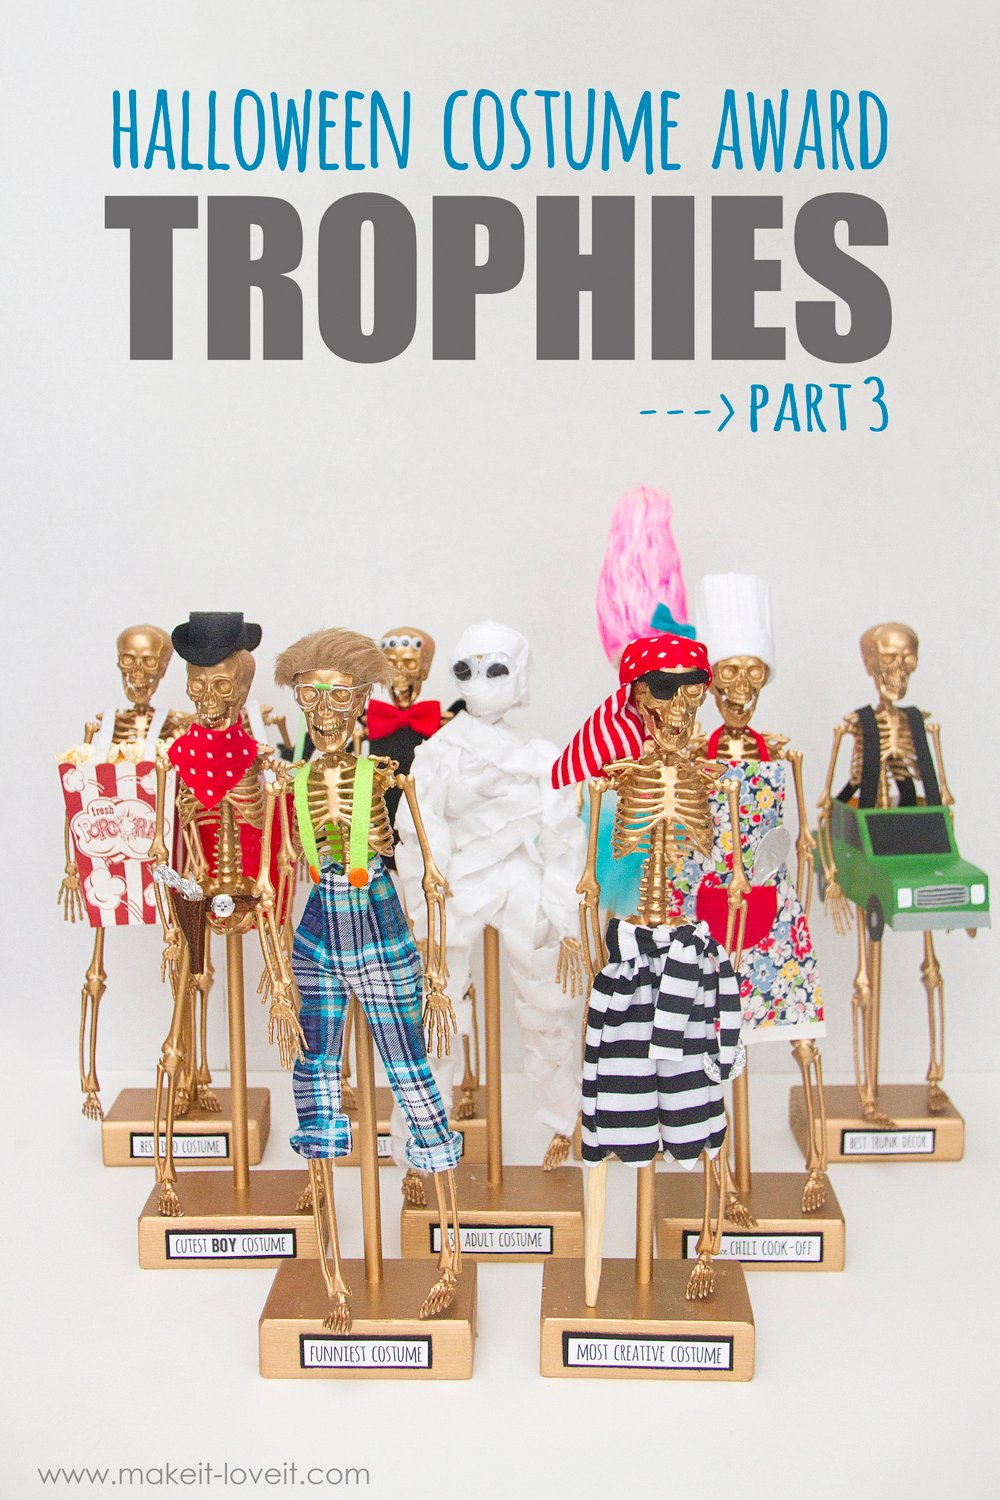 Diy halloween costume award trophies — part 3!!!